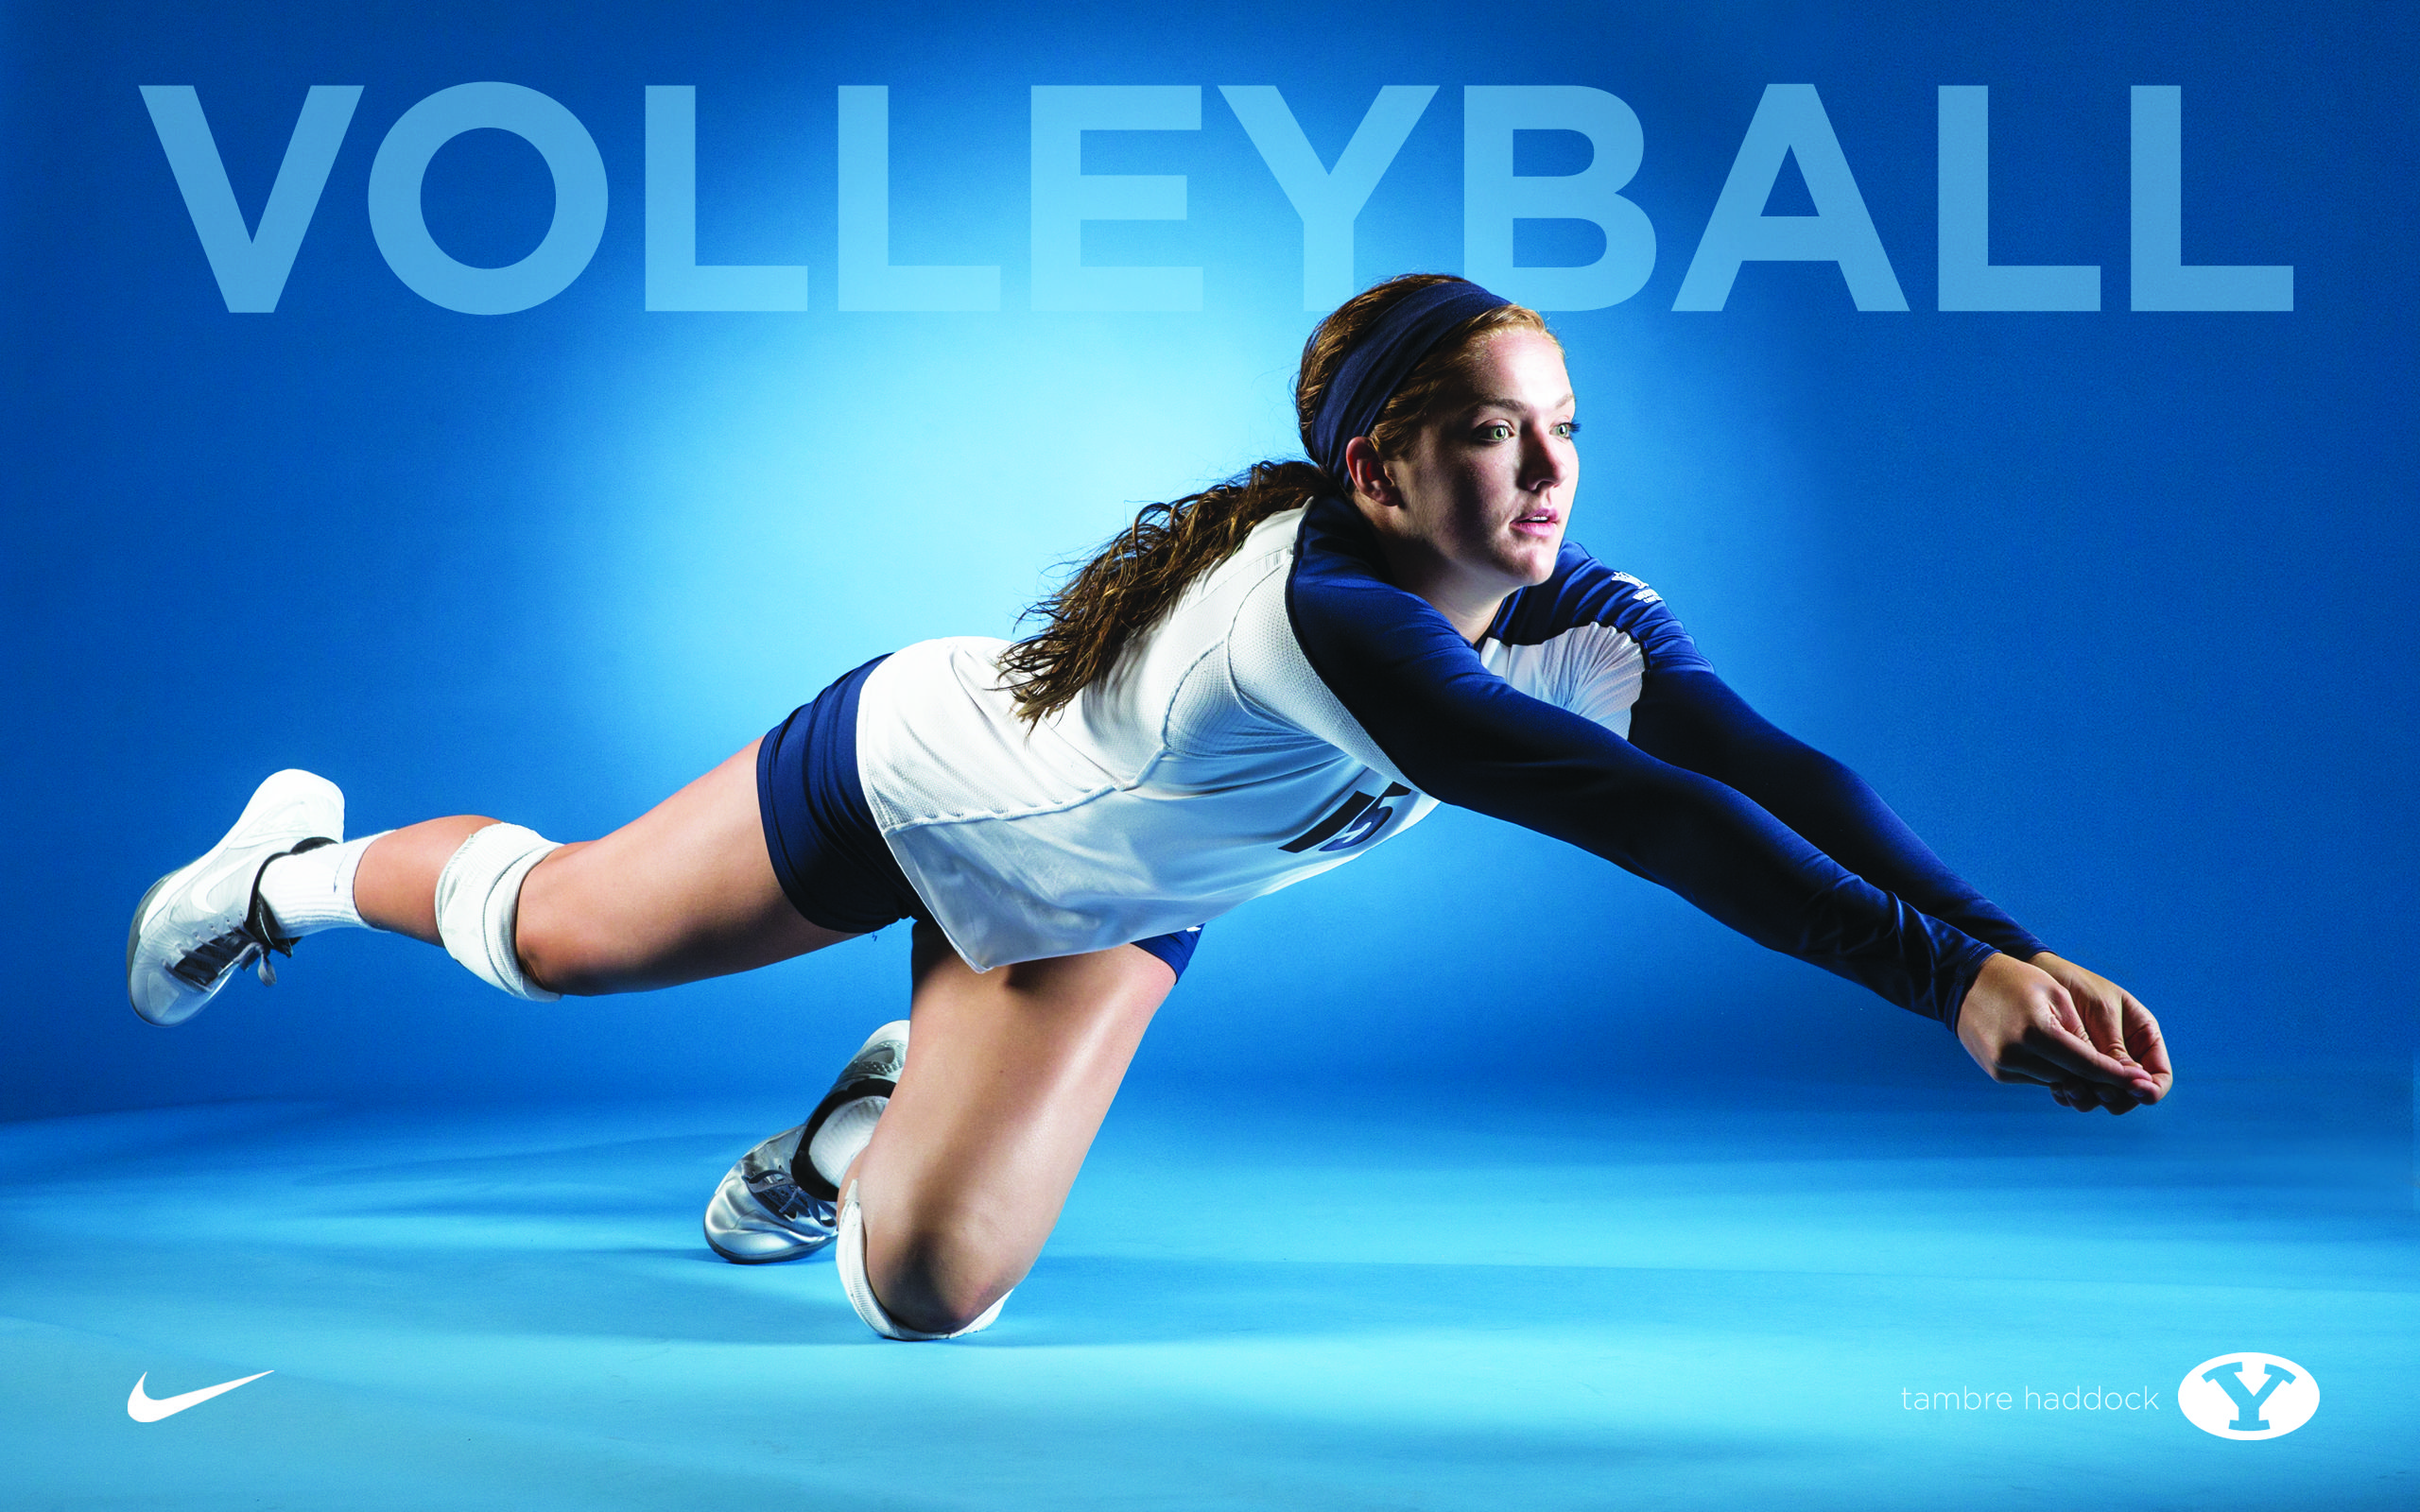 Latest Women S Volleyball Wallpaper The Official Site Of Byu Athletics Volleyball Wallpaper Volleyball Pictures Volleyball Images